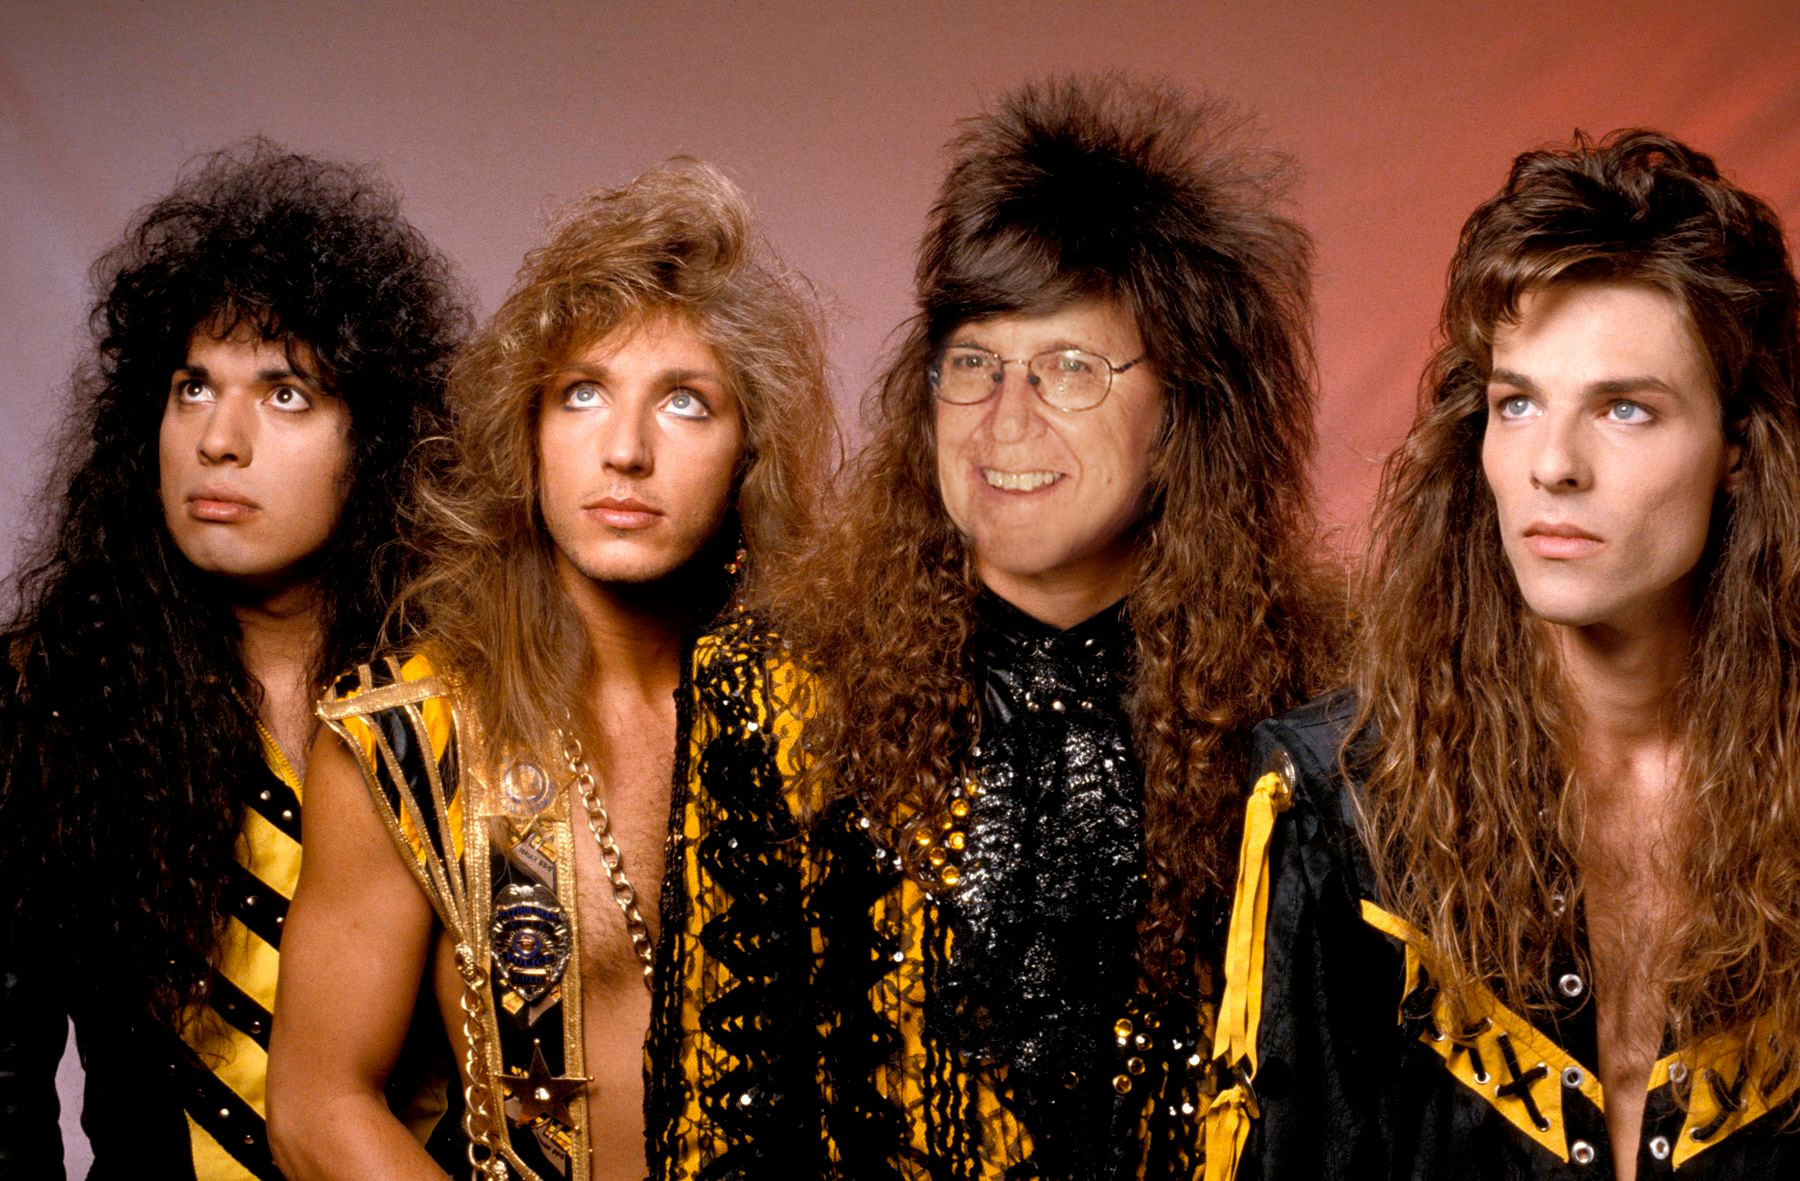 This one was actually made for a work retirement slideshow I made. Phil (second from the right) has always joked about how much hair he used to have, I told him I found an old photo of him.